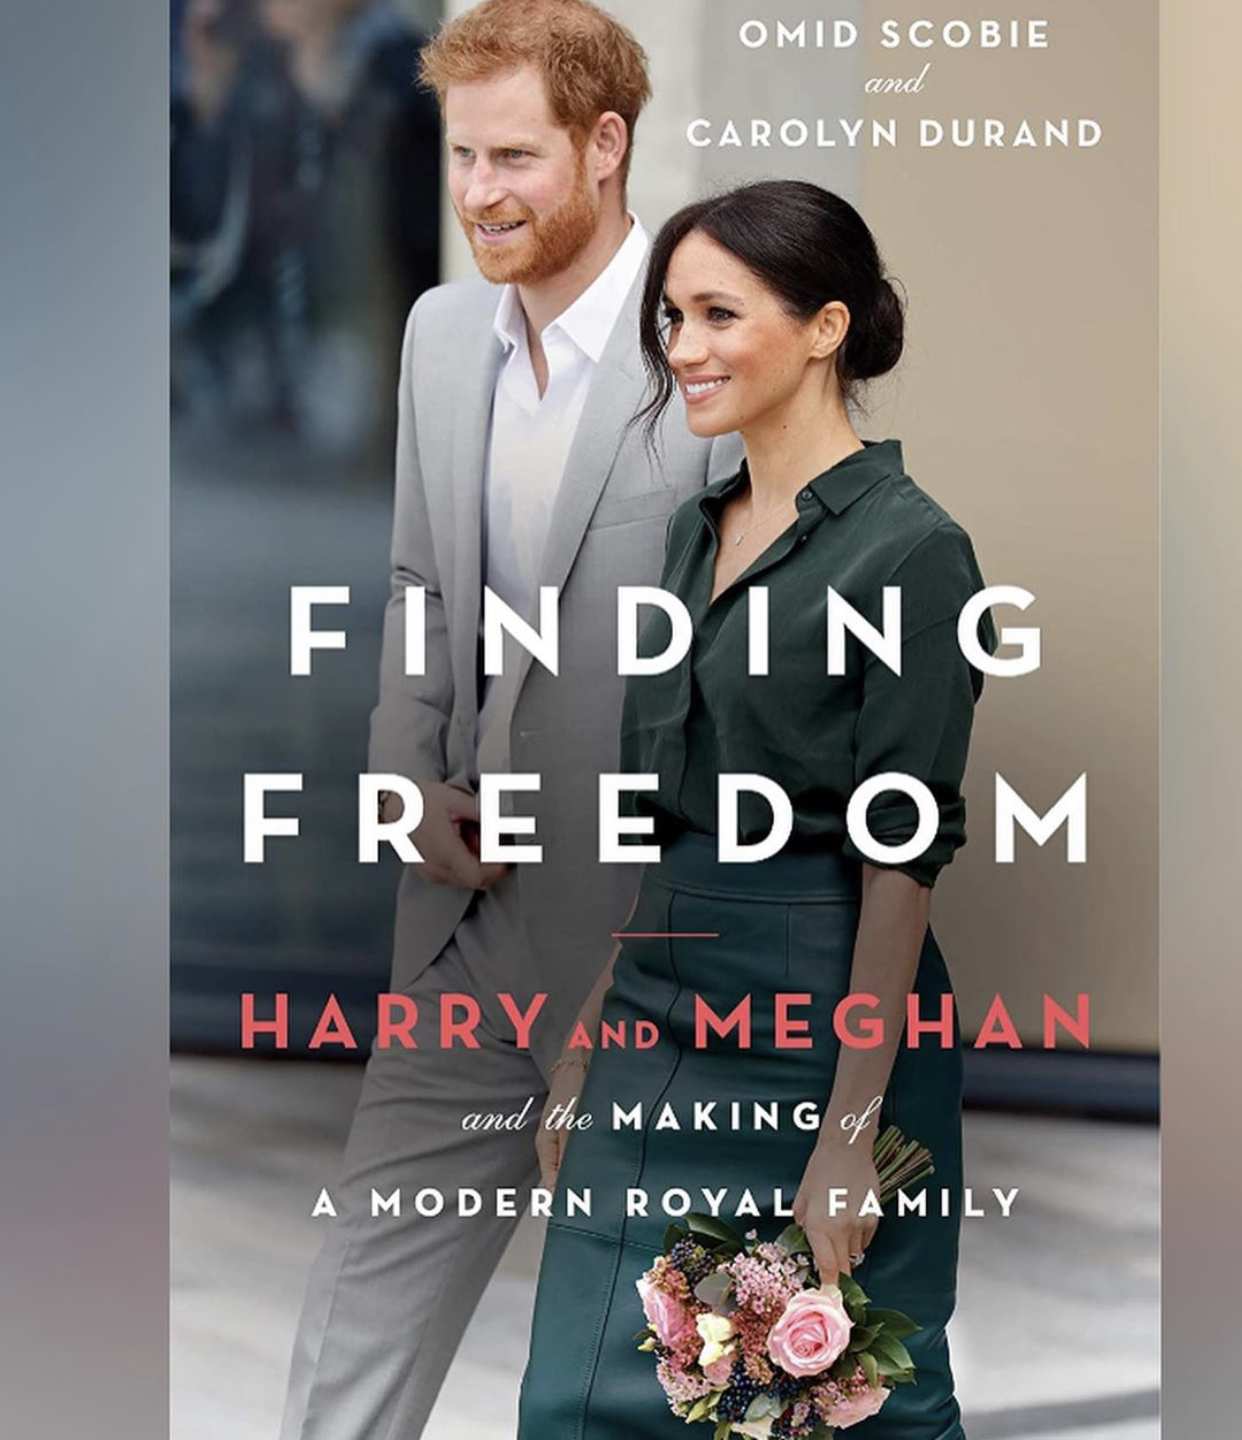 Finding Freedom Prince Harry Meghan Markle